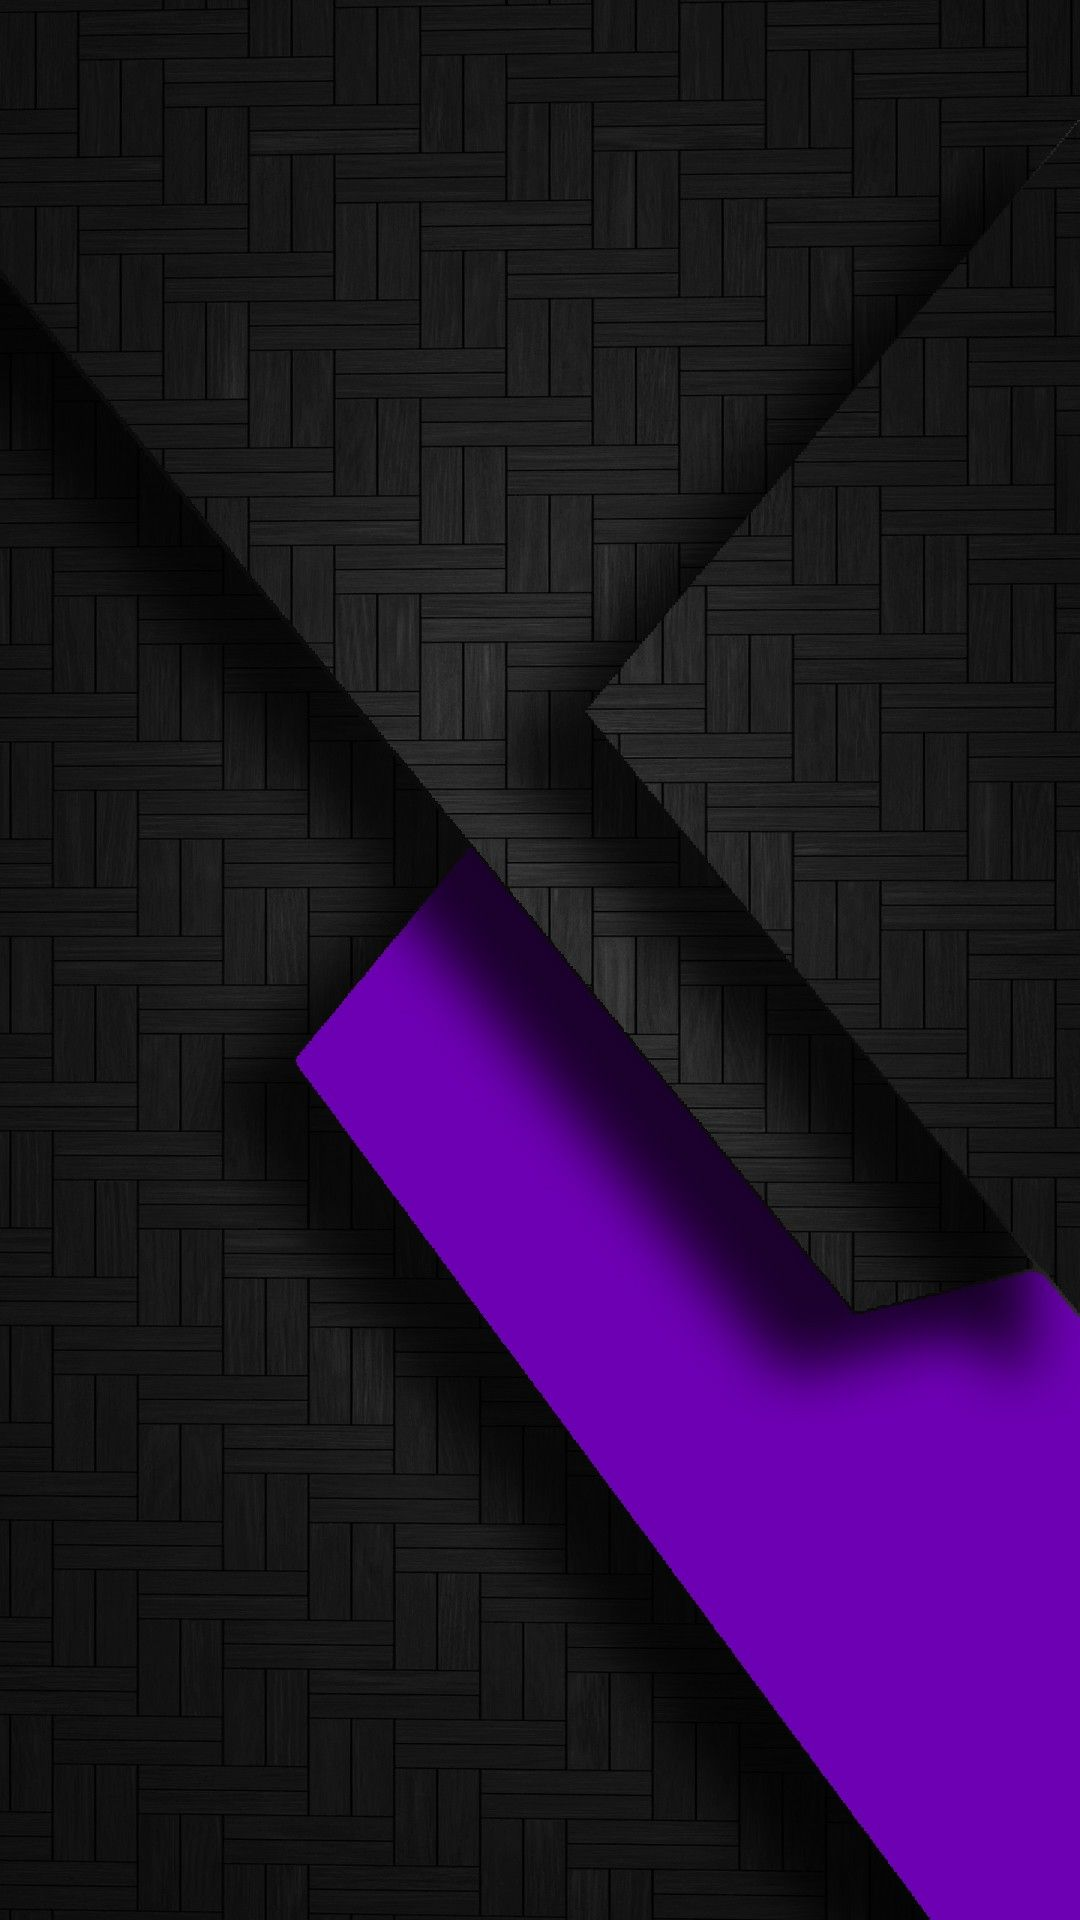 Purple and Black Wallpapers - Top Free Purple and Black ...